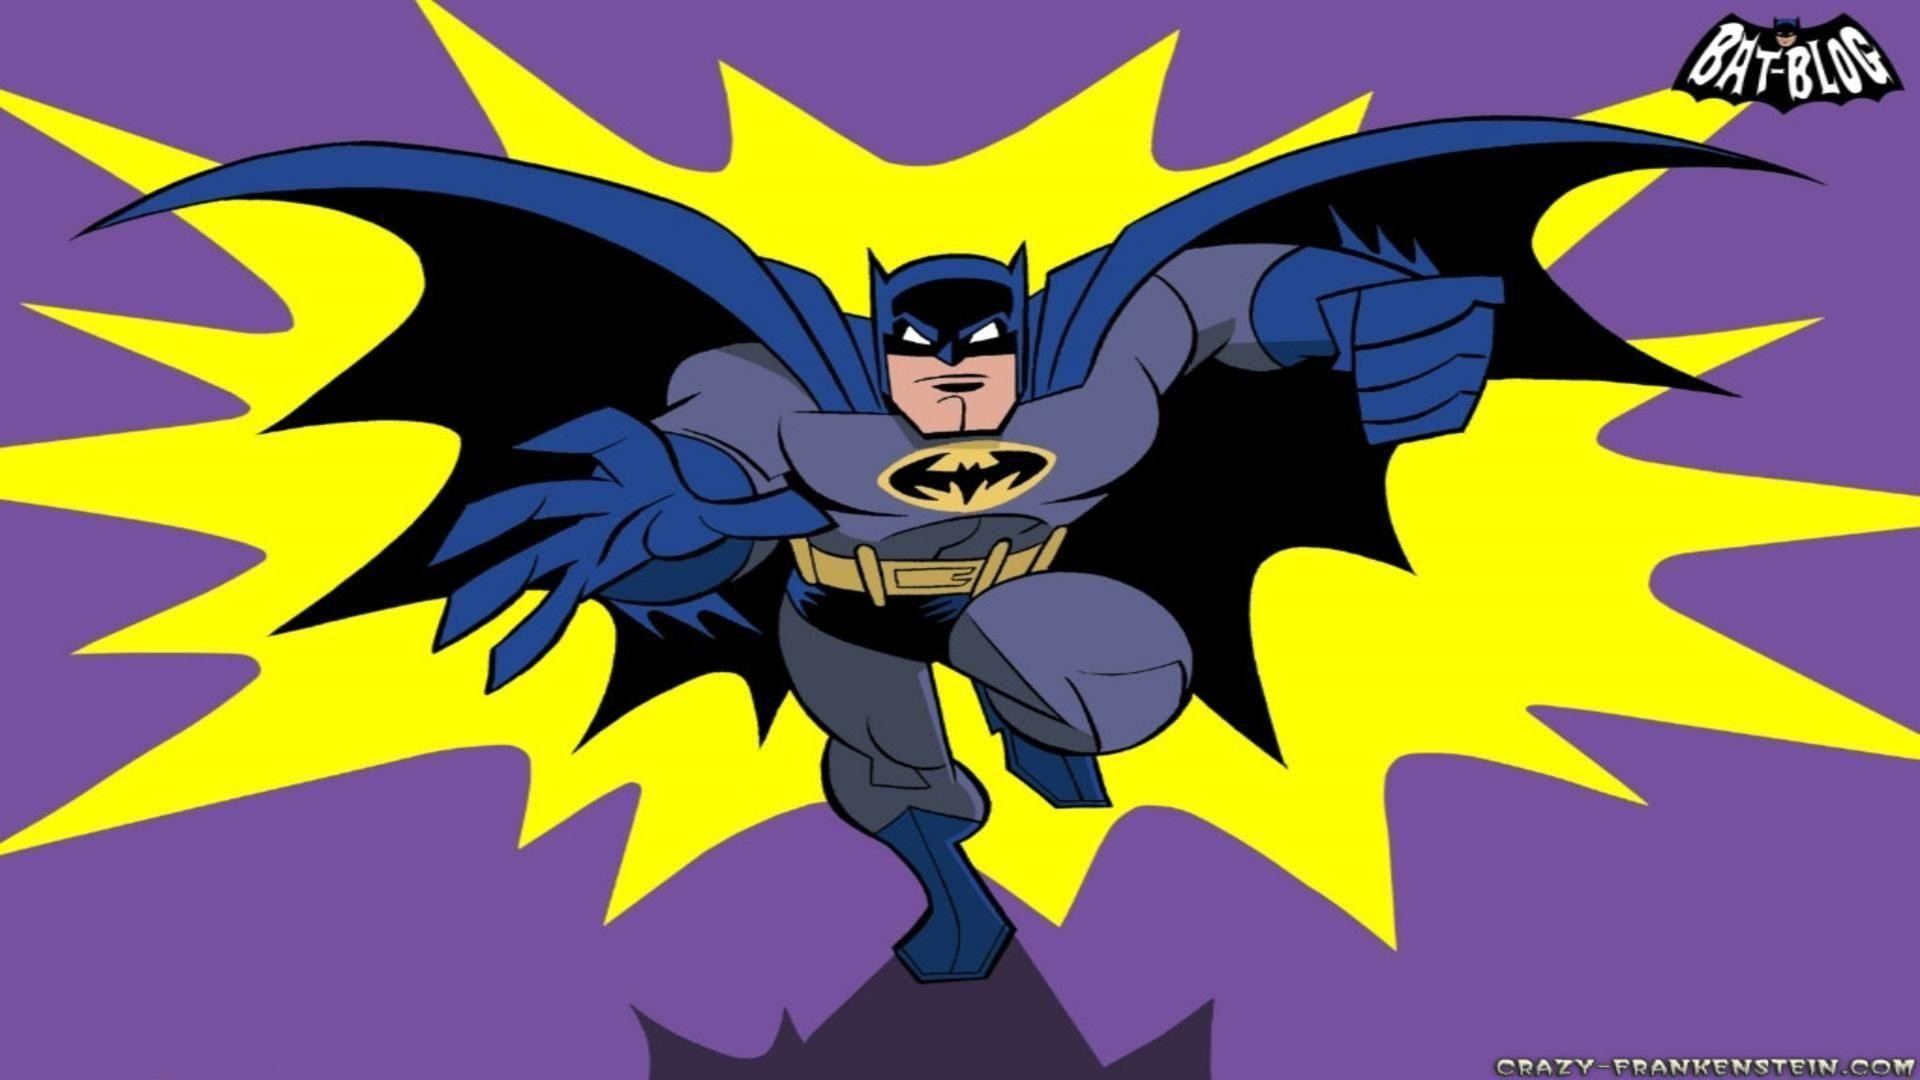 1920x1080 Batman arrives cartoon wallpapers free desktop background - free .